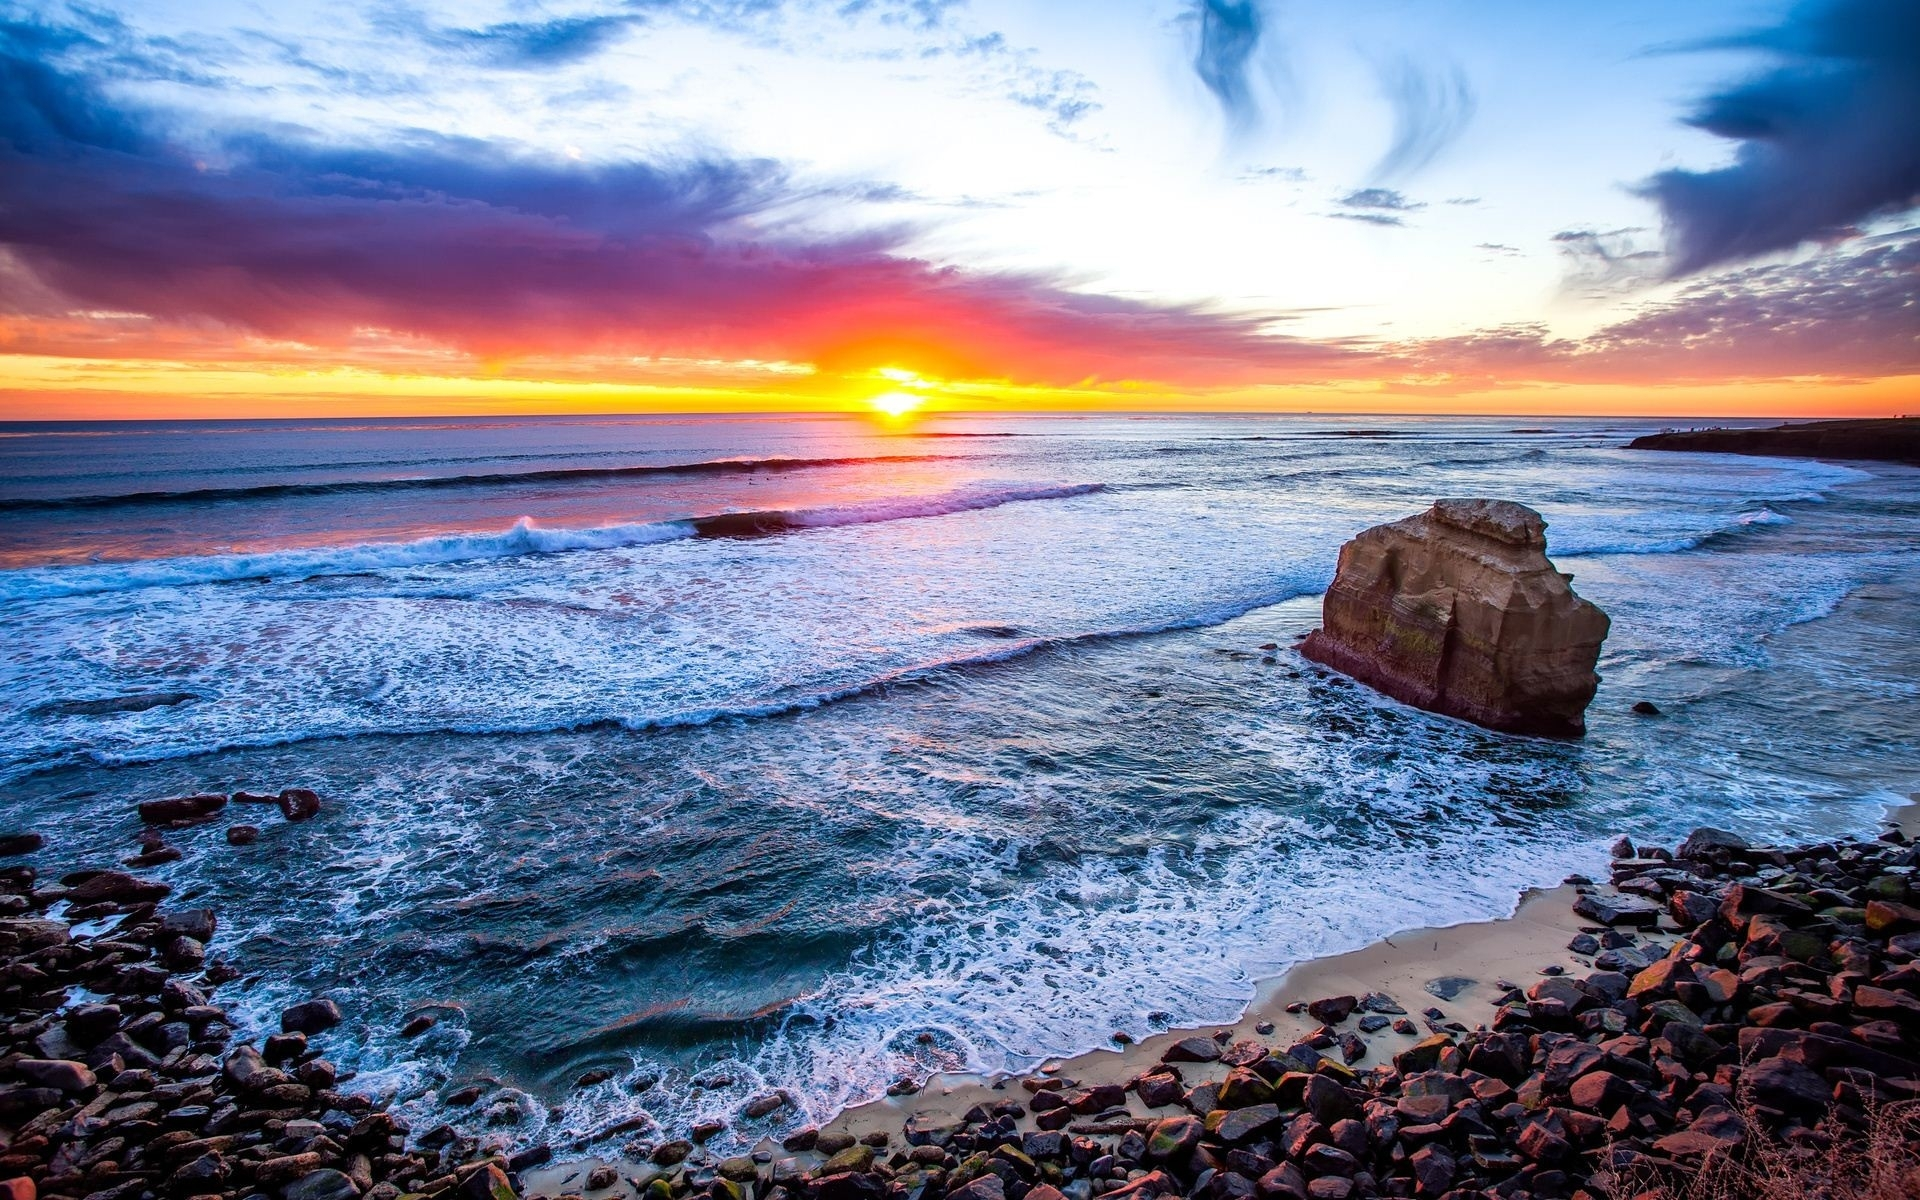 san diego beach pictures wallpaper (48+ images)